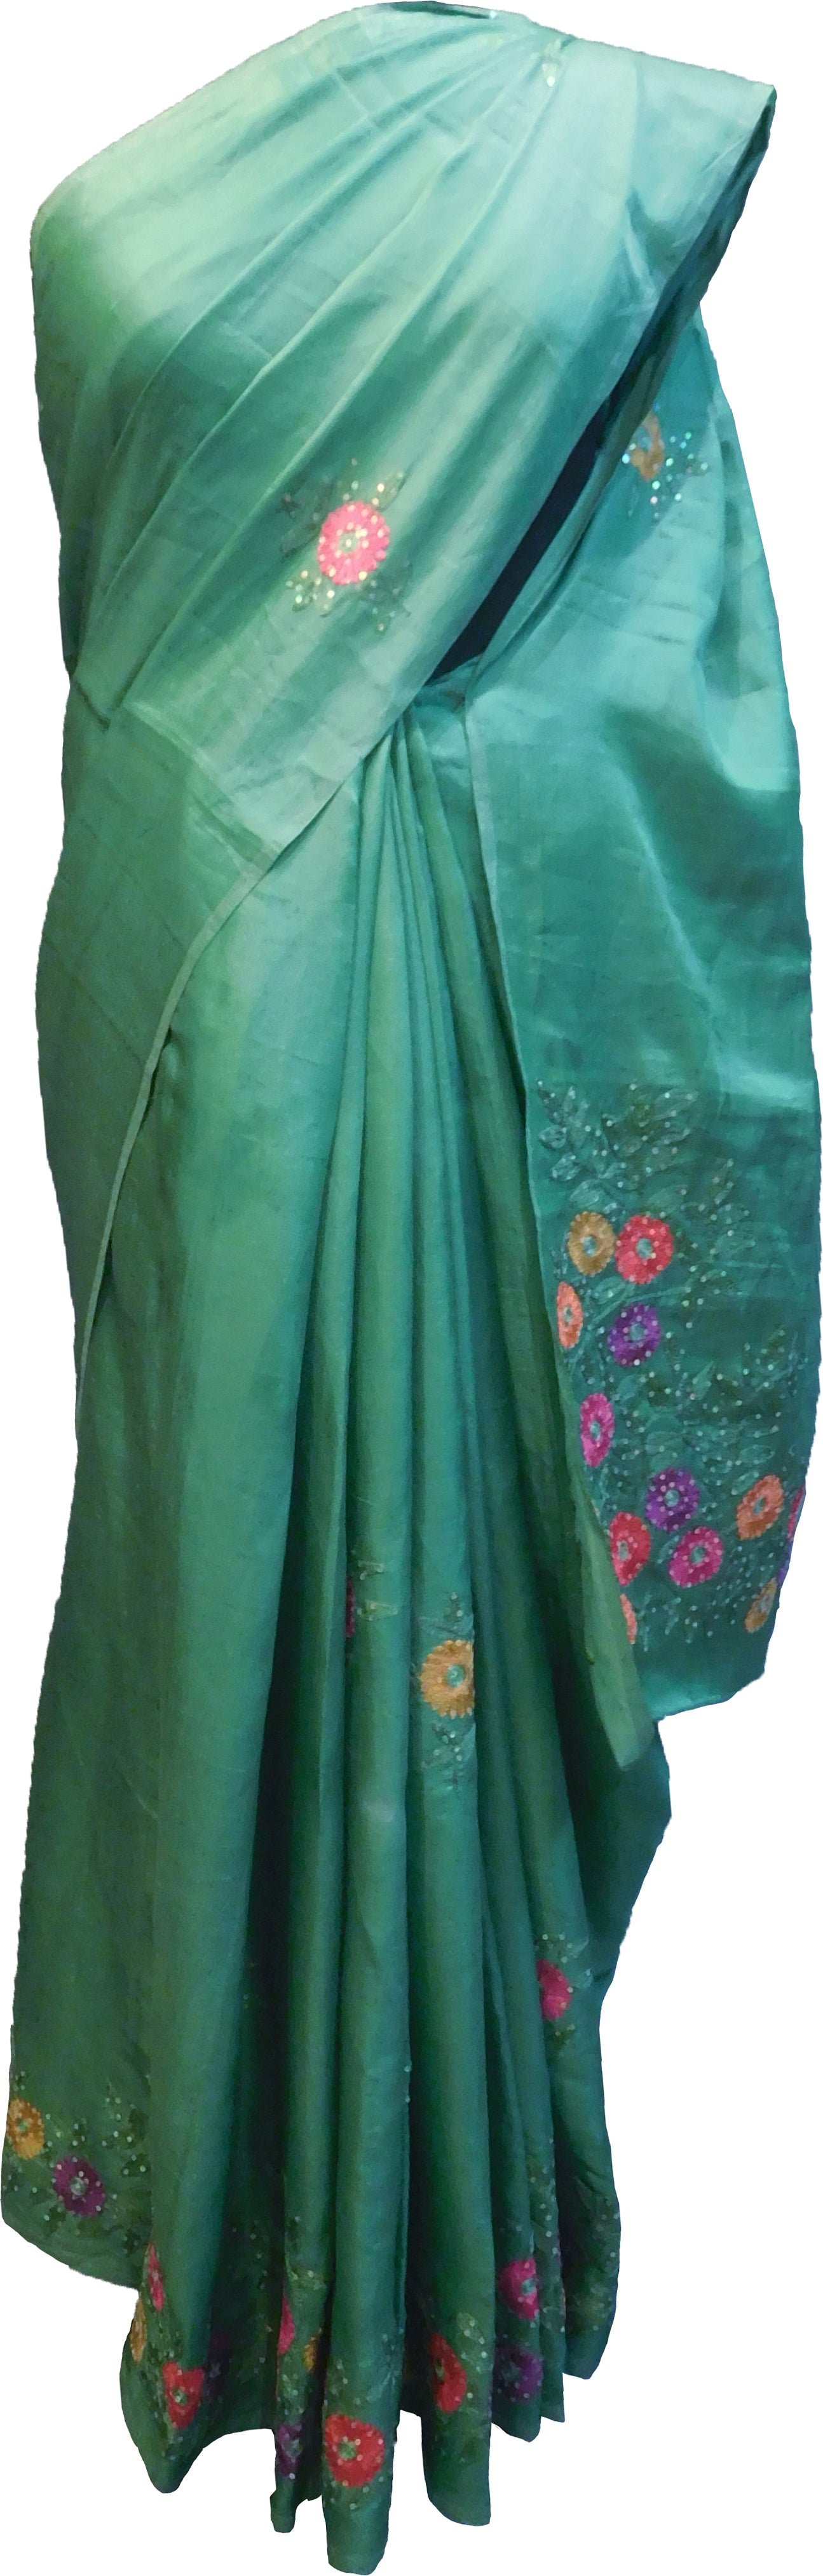 SMSAREE Turquoise Designer Wedding Partywear Silk Stone & Sequence Hand Embroidery Work Bridal Saree Sari With Blouse Piece F352